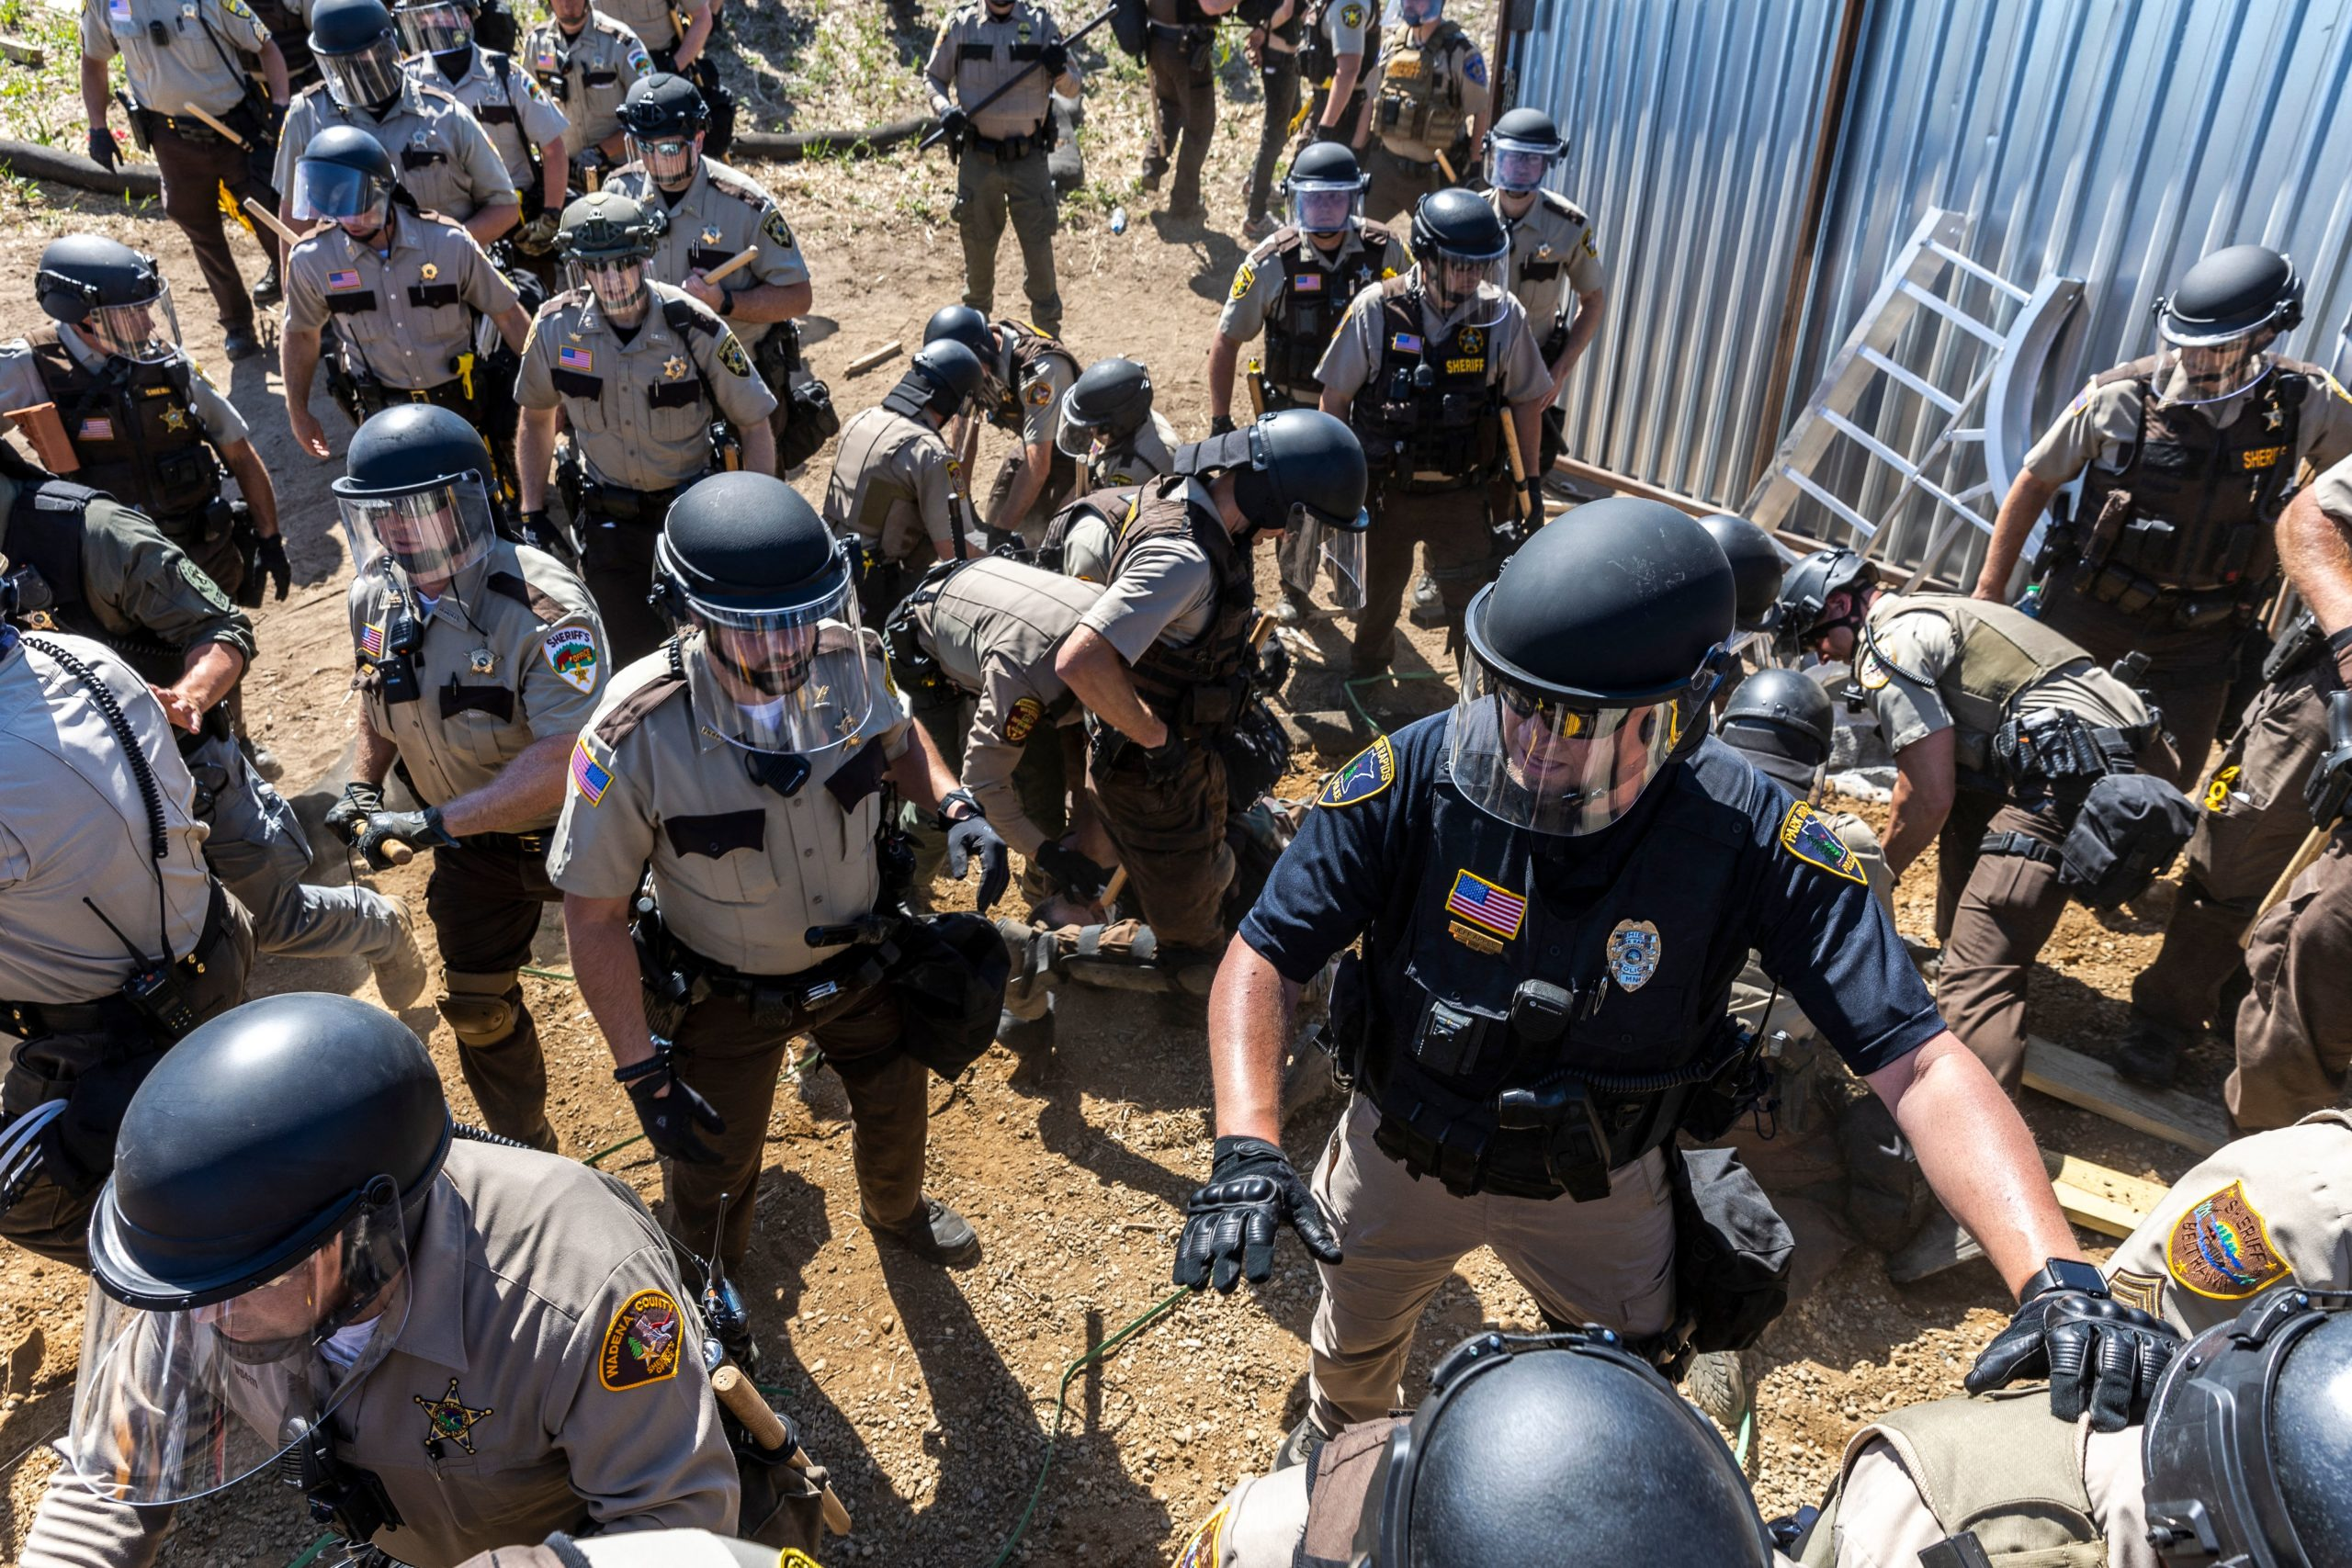 Police in riot gear arrest environmental activists at the Line 3 pipeline pumping station near Itasca State Park in Minnesota on Monday. (Kerem Yucel/AFP via Getty Images)